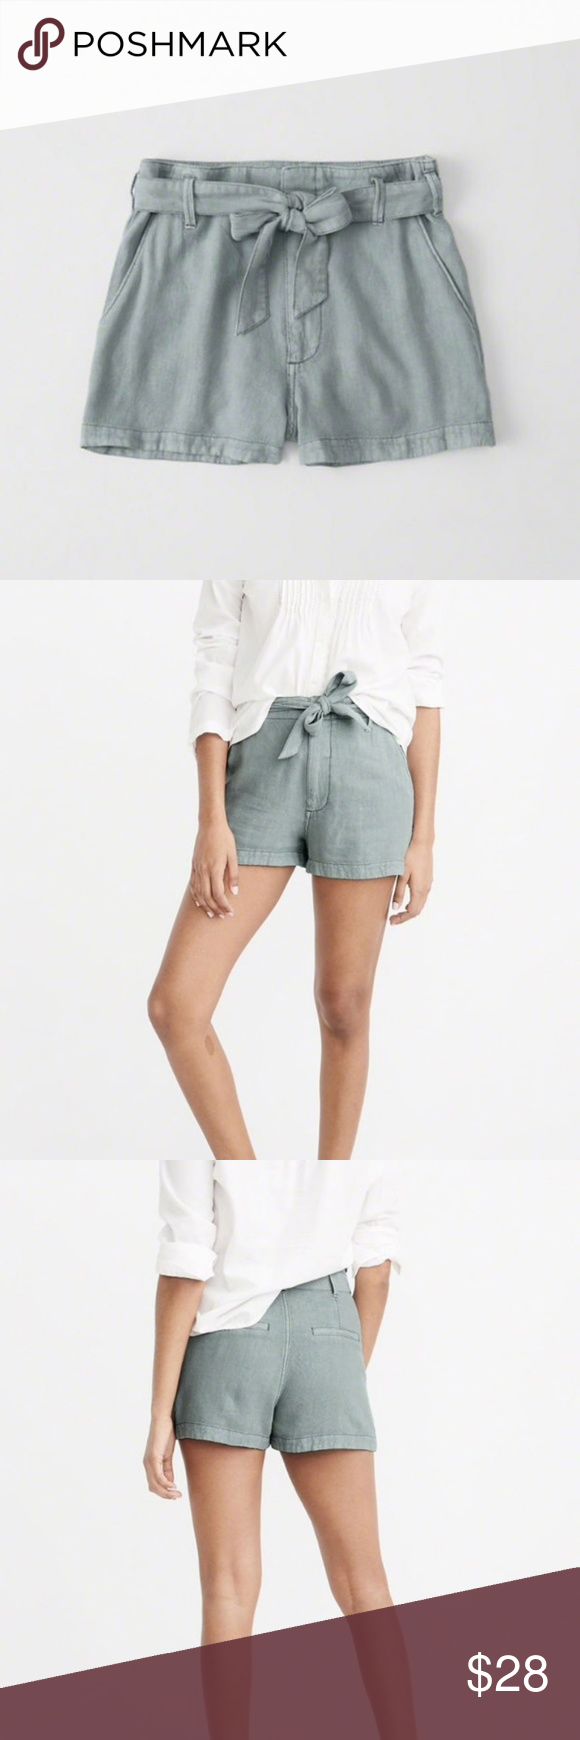 Abercrombie Belted High Rise Shorts Seafoam Green   Clothes